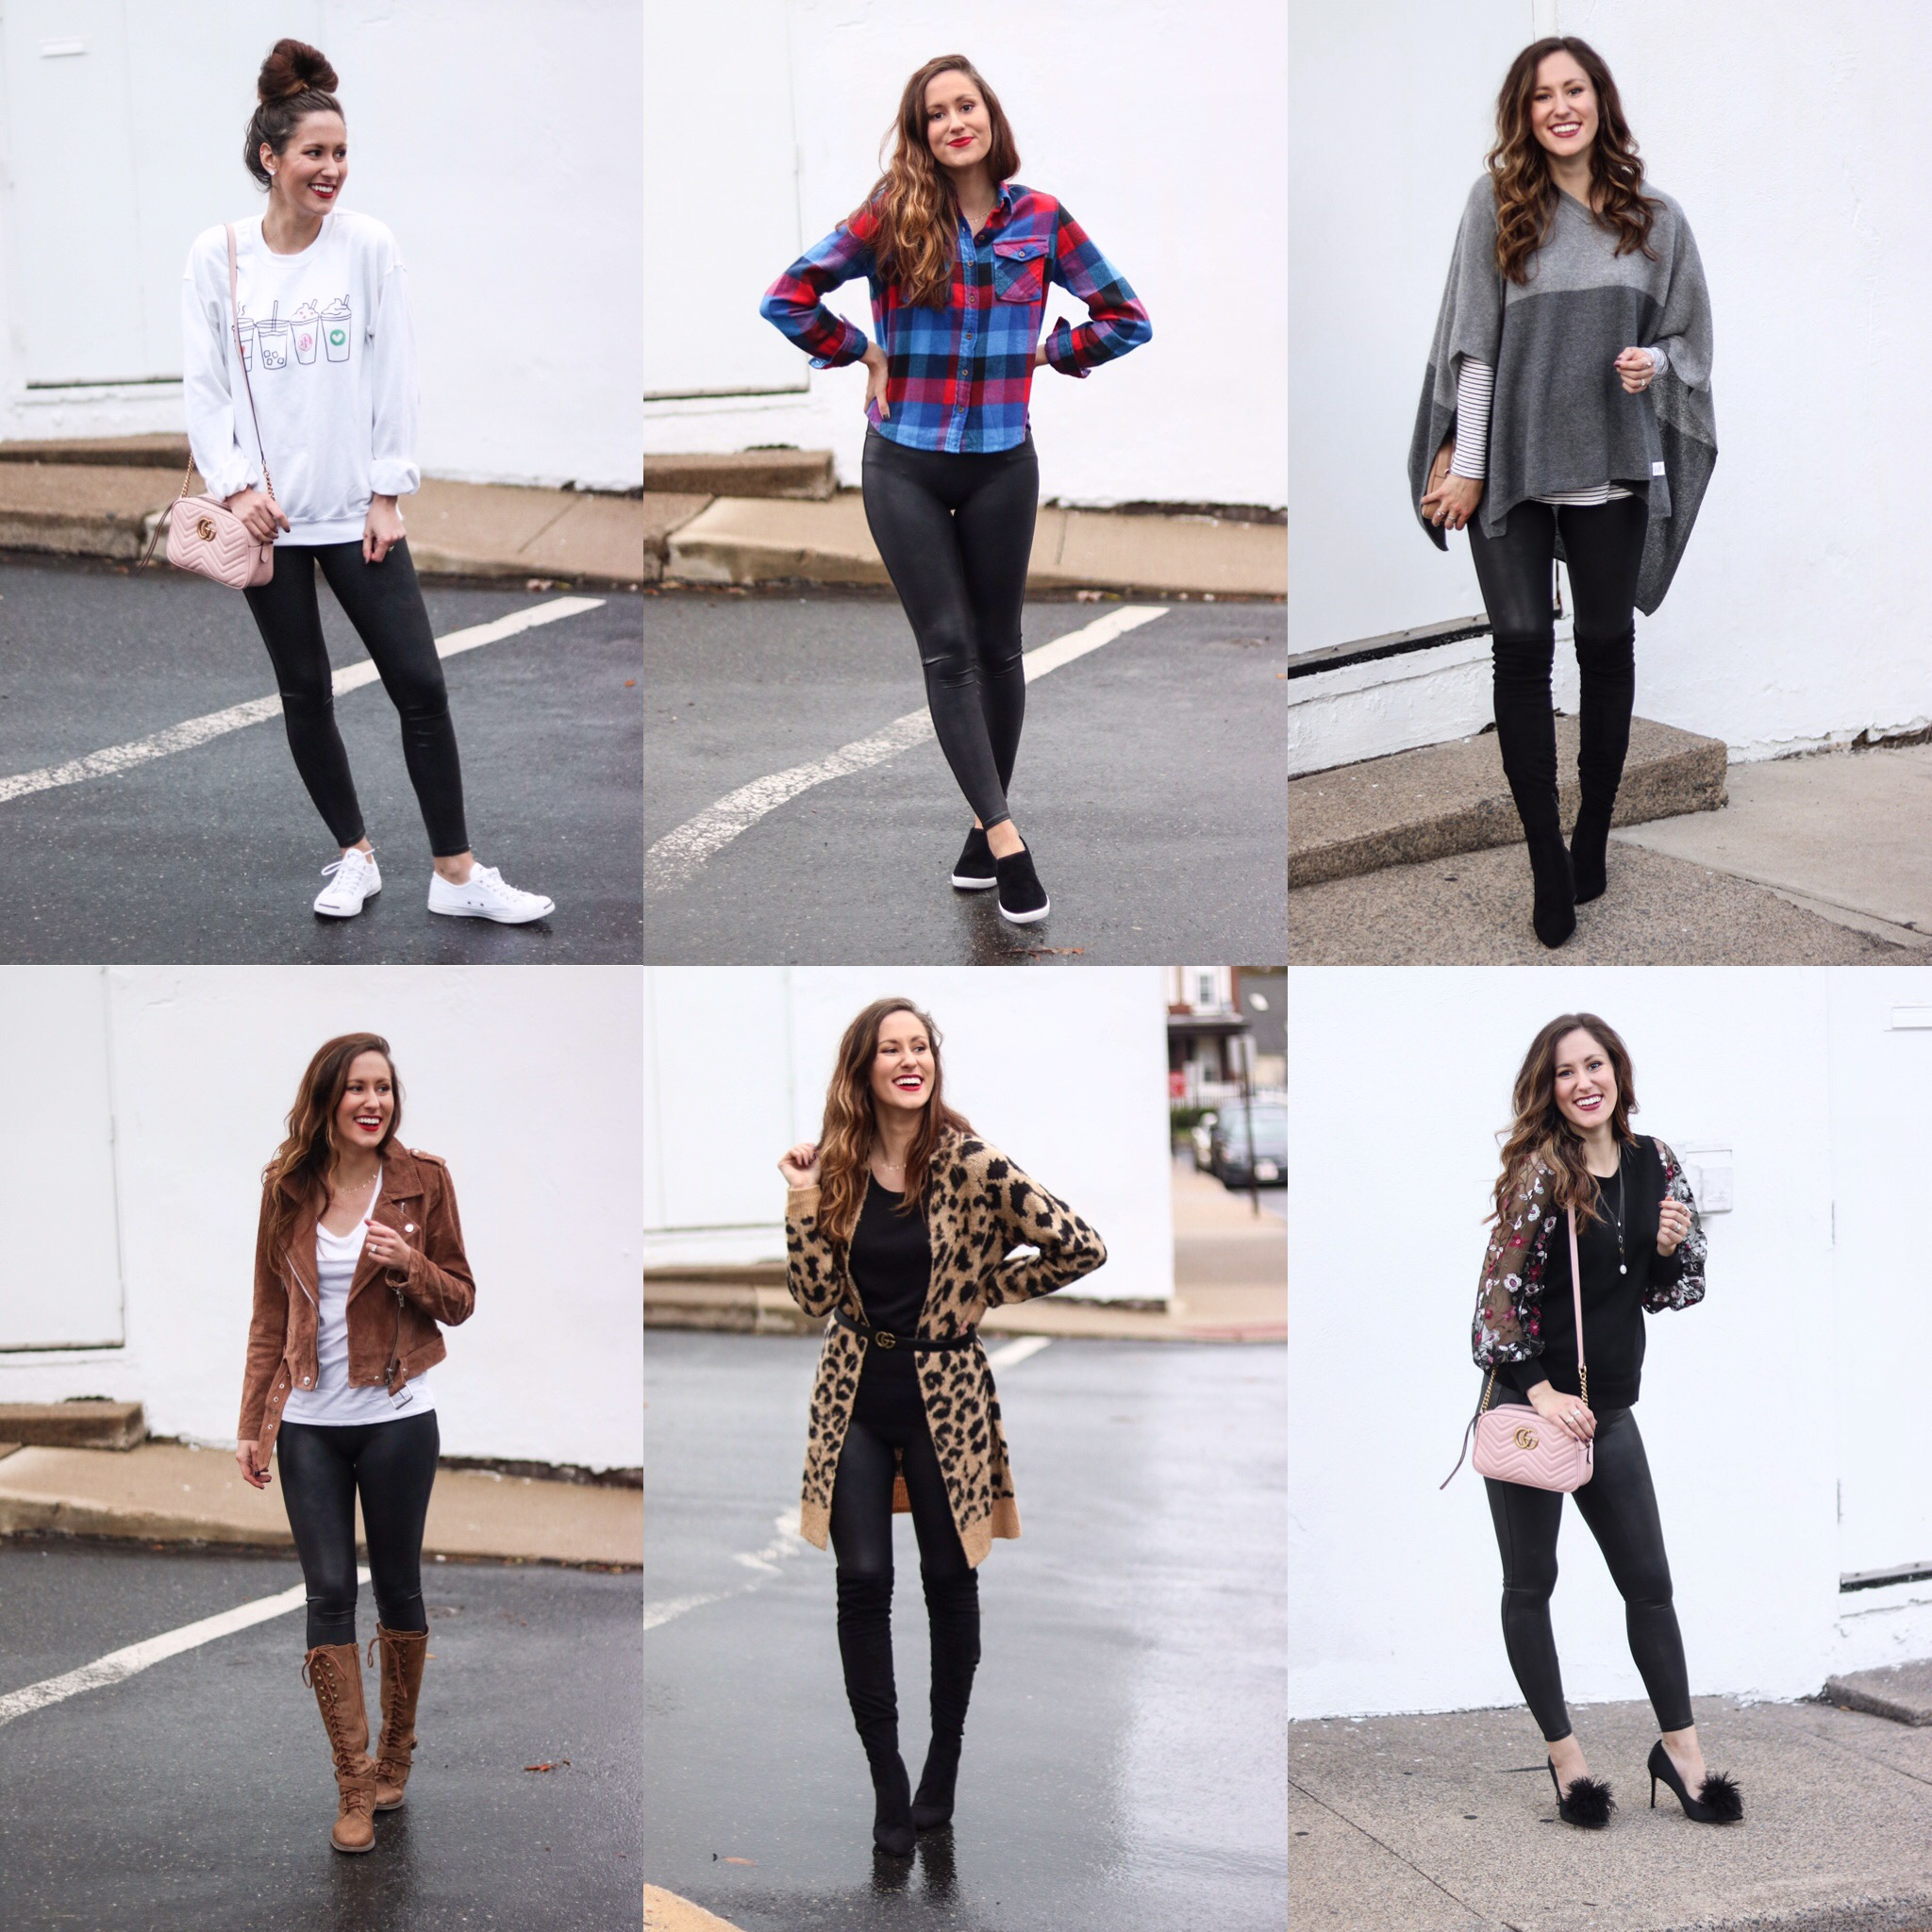 Leather Leggings Lookbook: 6 Ways to Style Leather Leggings